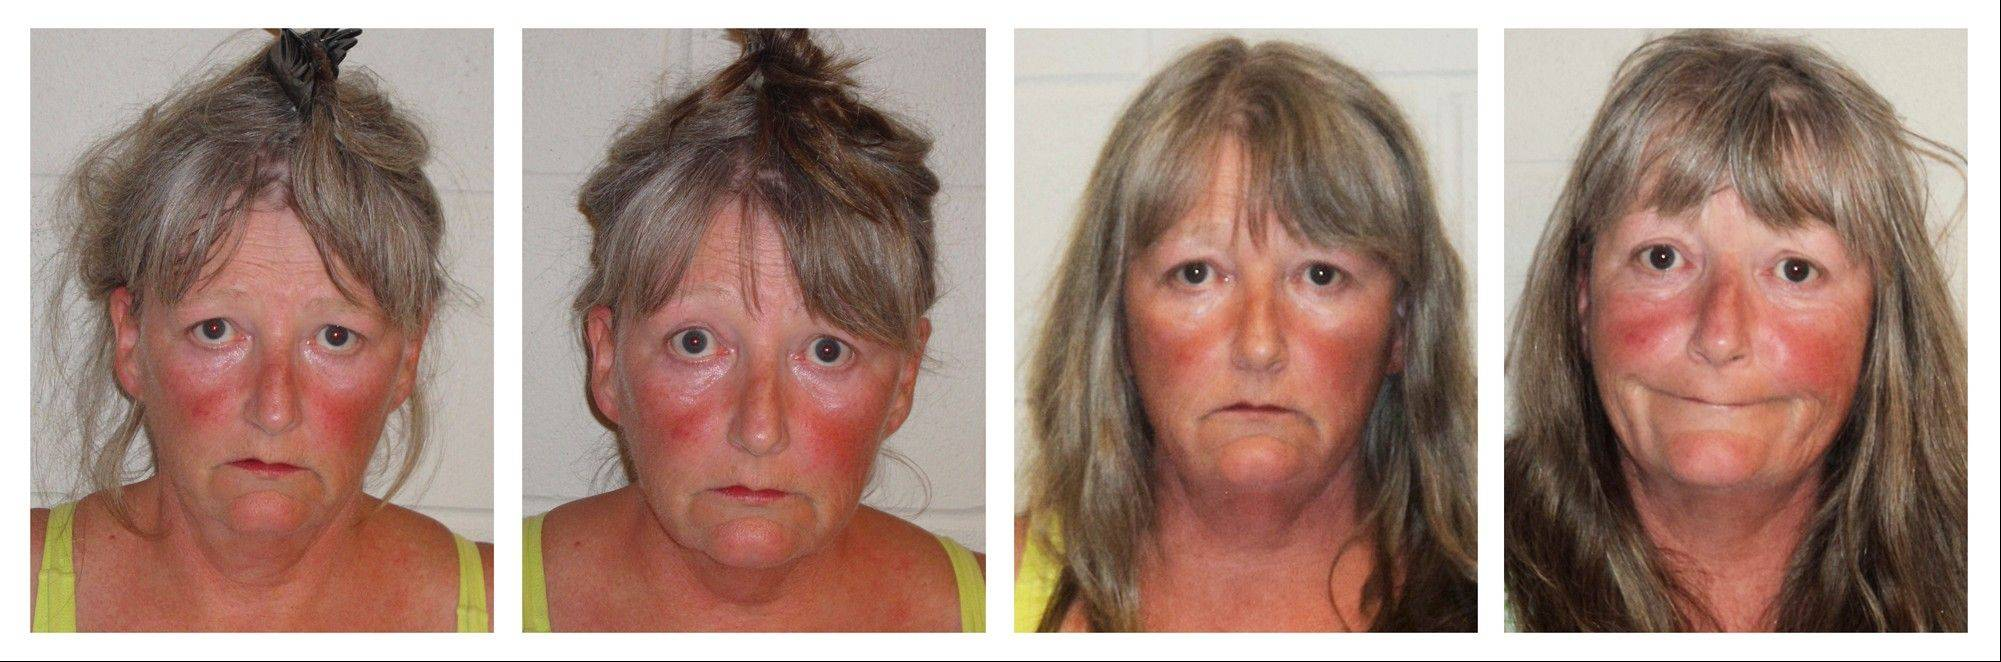 This series of booking photos, released by the Epping, N.H., Police Department, shows Joyce Coffey, arrested four times in 26 hours Tuesday and Wednesdsay, three times for playing loud music.